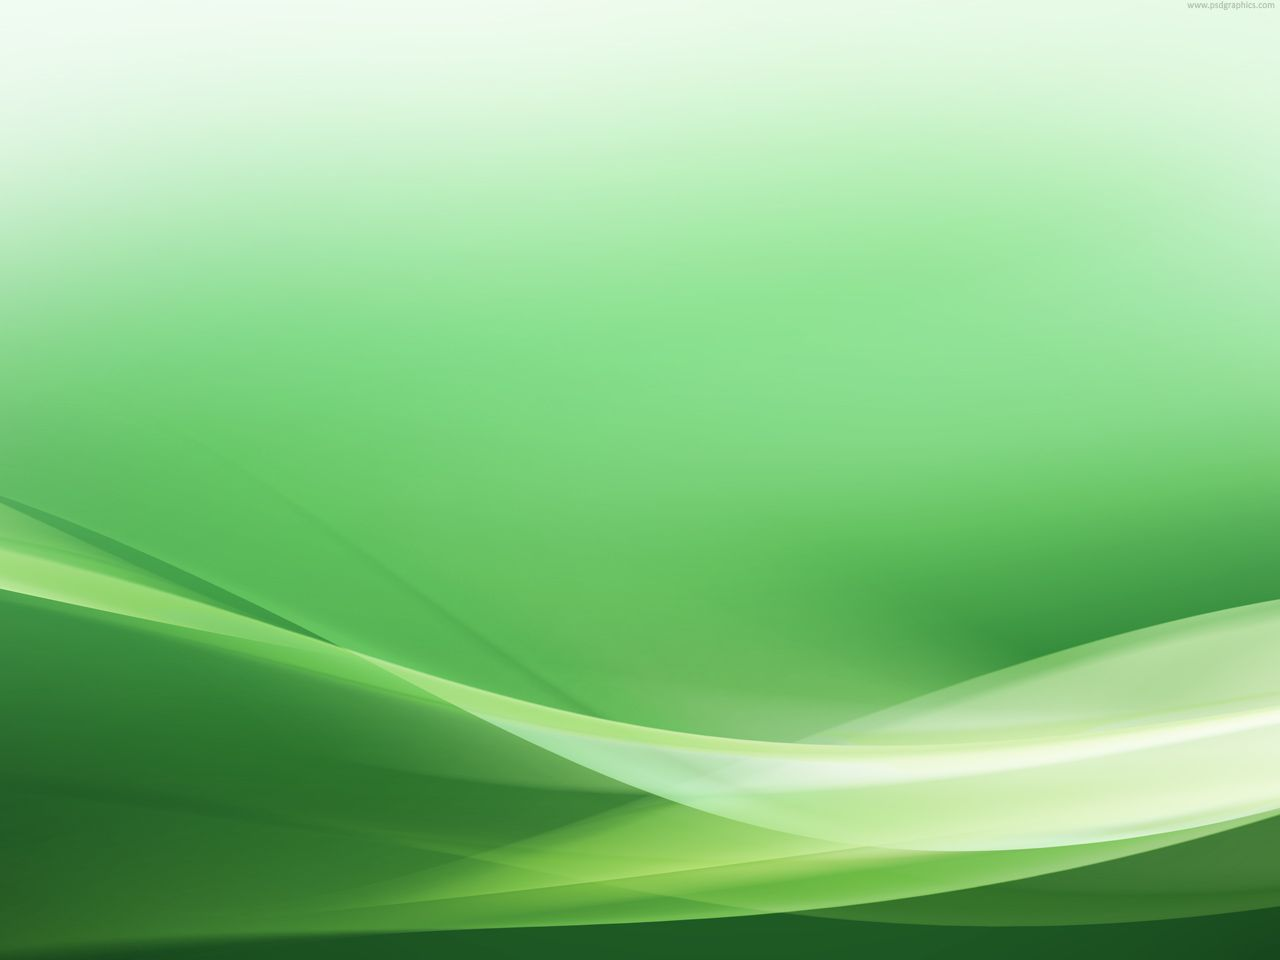 Abstract green background. | Background Textures ...